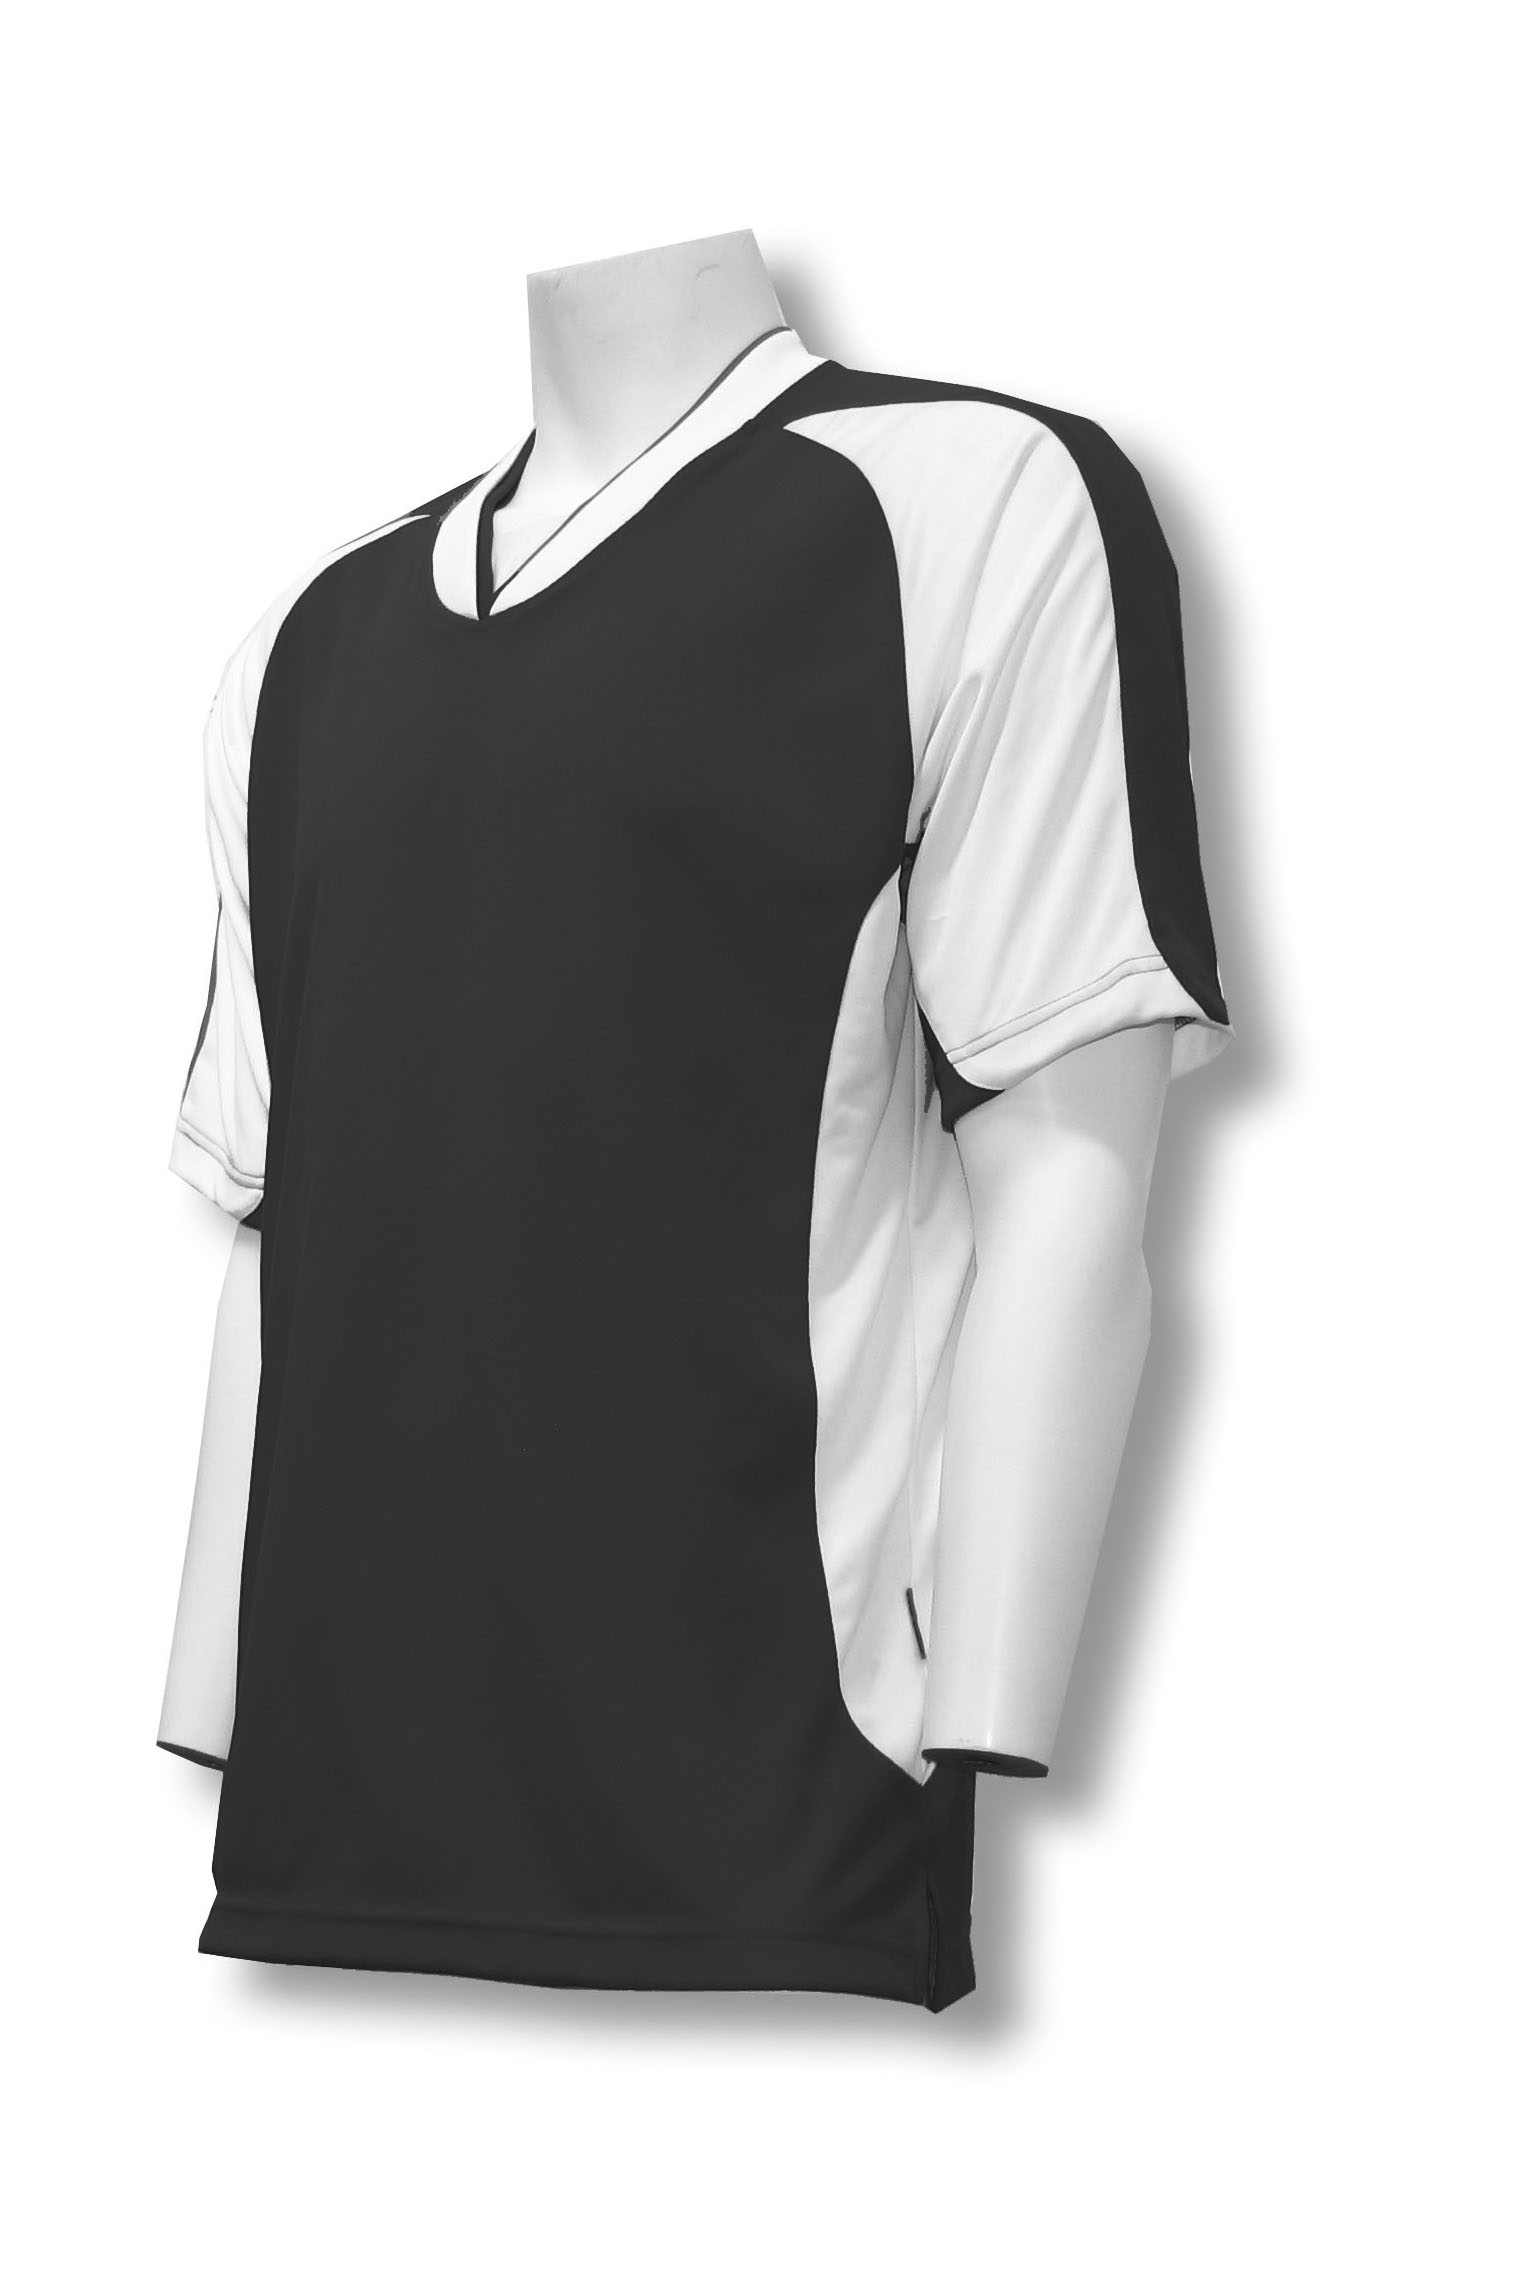 Sweeper / Falcon soccer jersey in black by Code Four Athletics